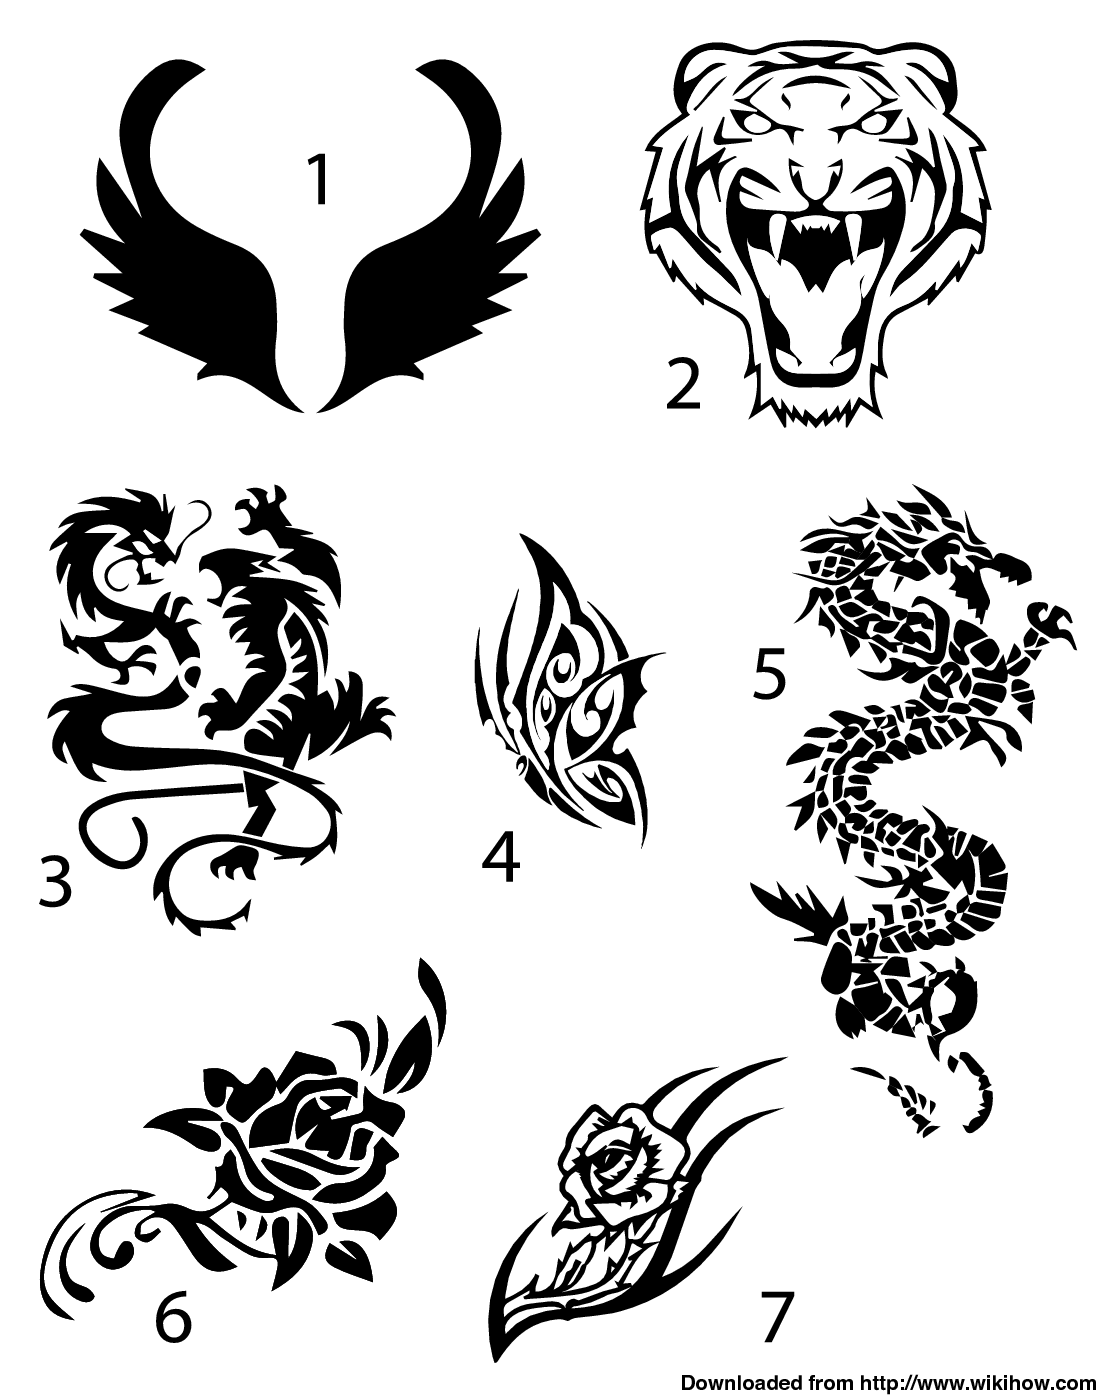 Sample Tattoo Designs Wikihow Temporary Tattoo Designs Temp Tattoo Sharpie Tattoos